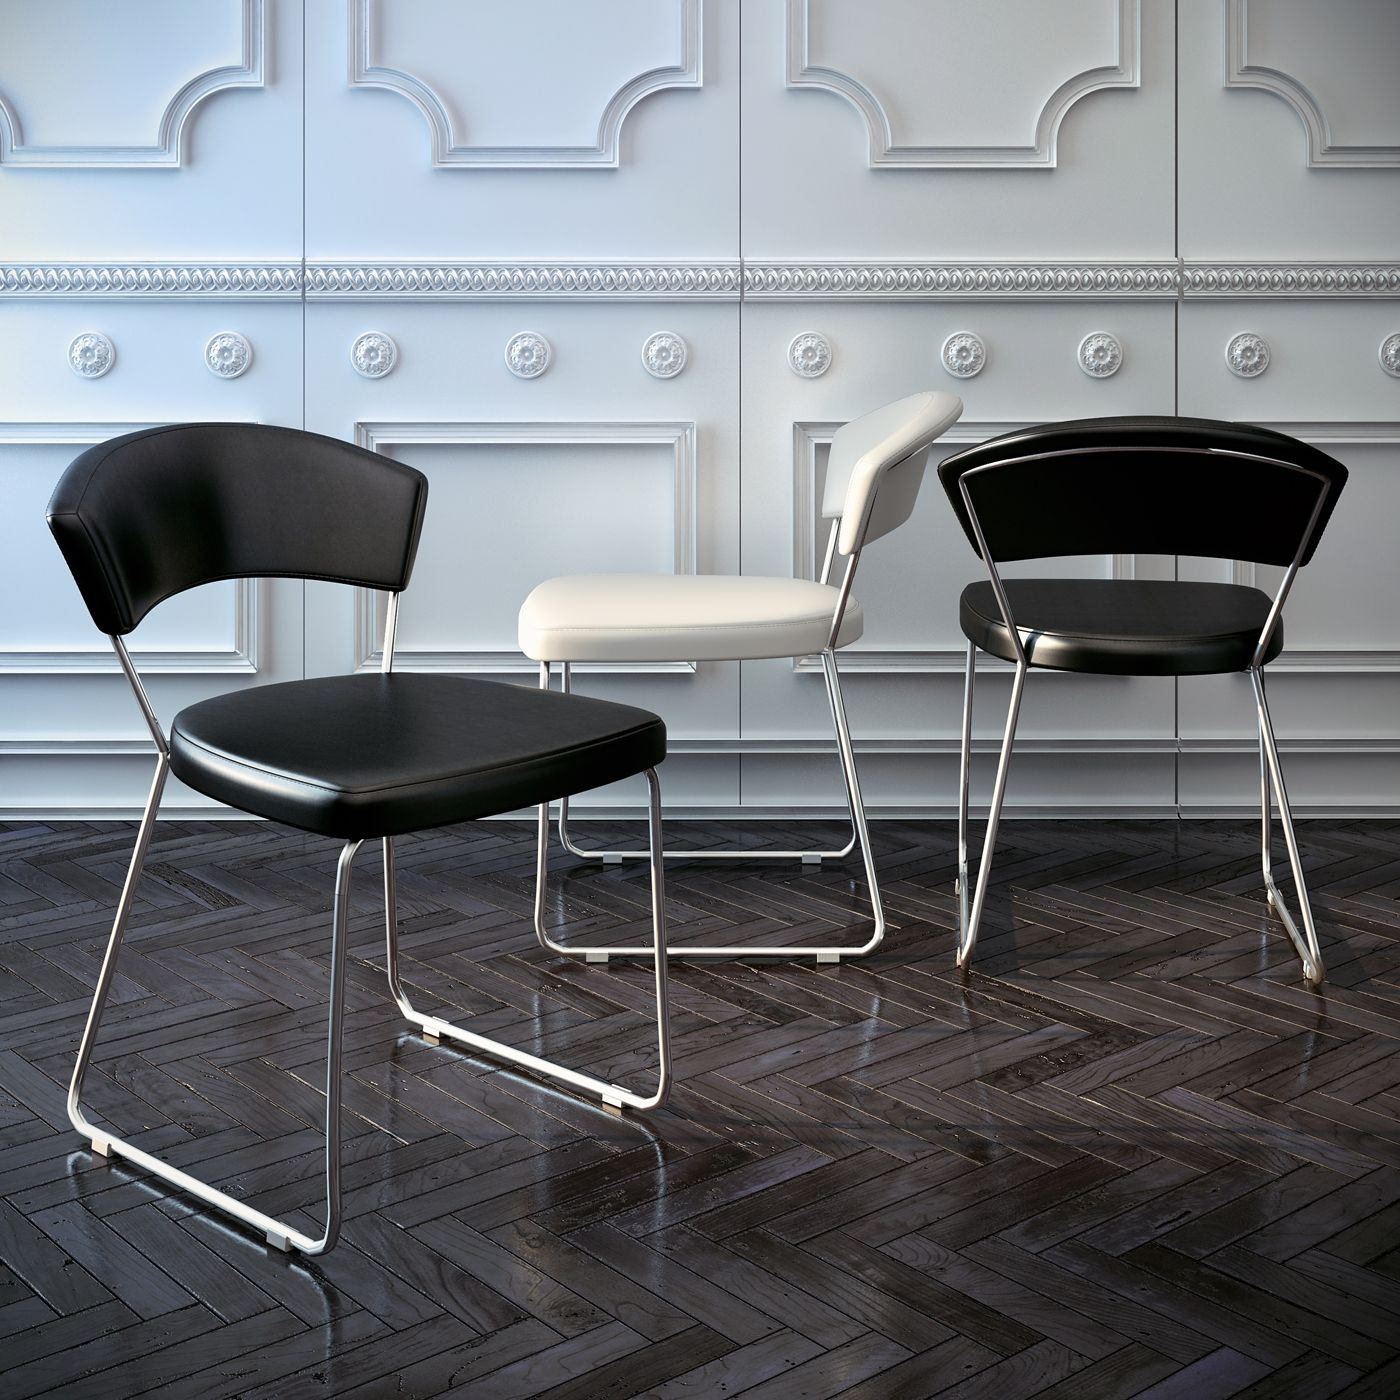 the ultra modern delancy dining chair brings a stylish flair into